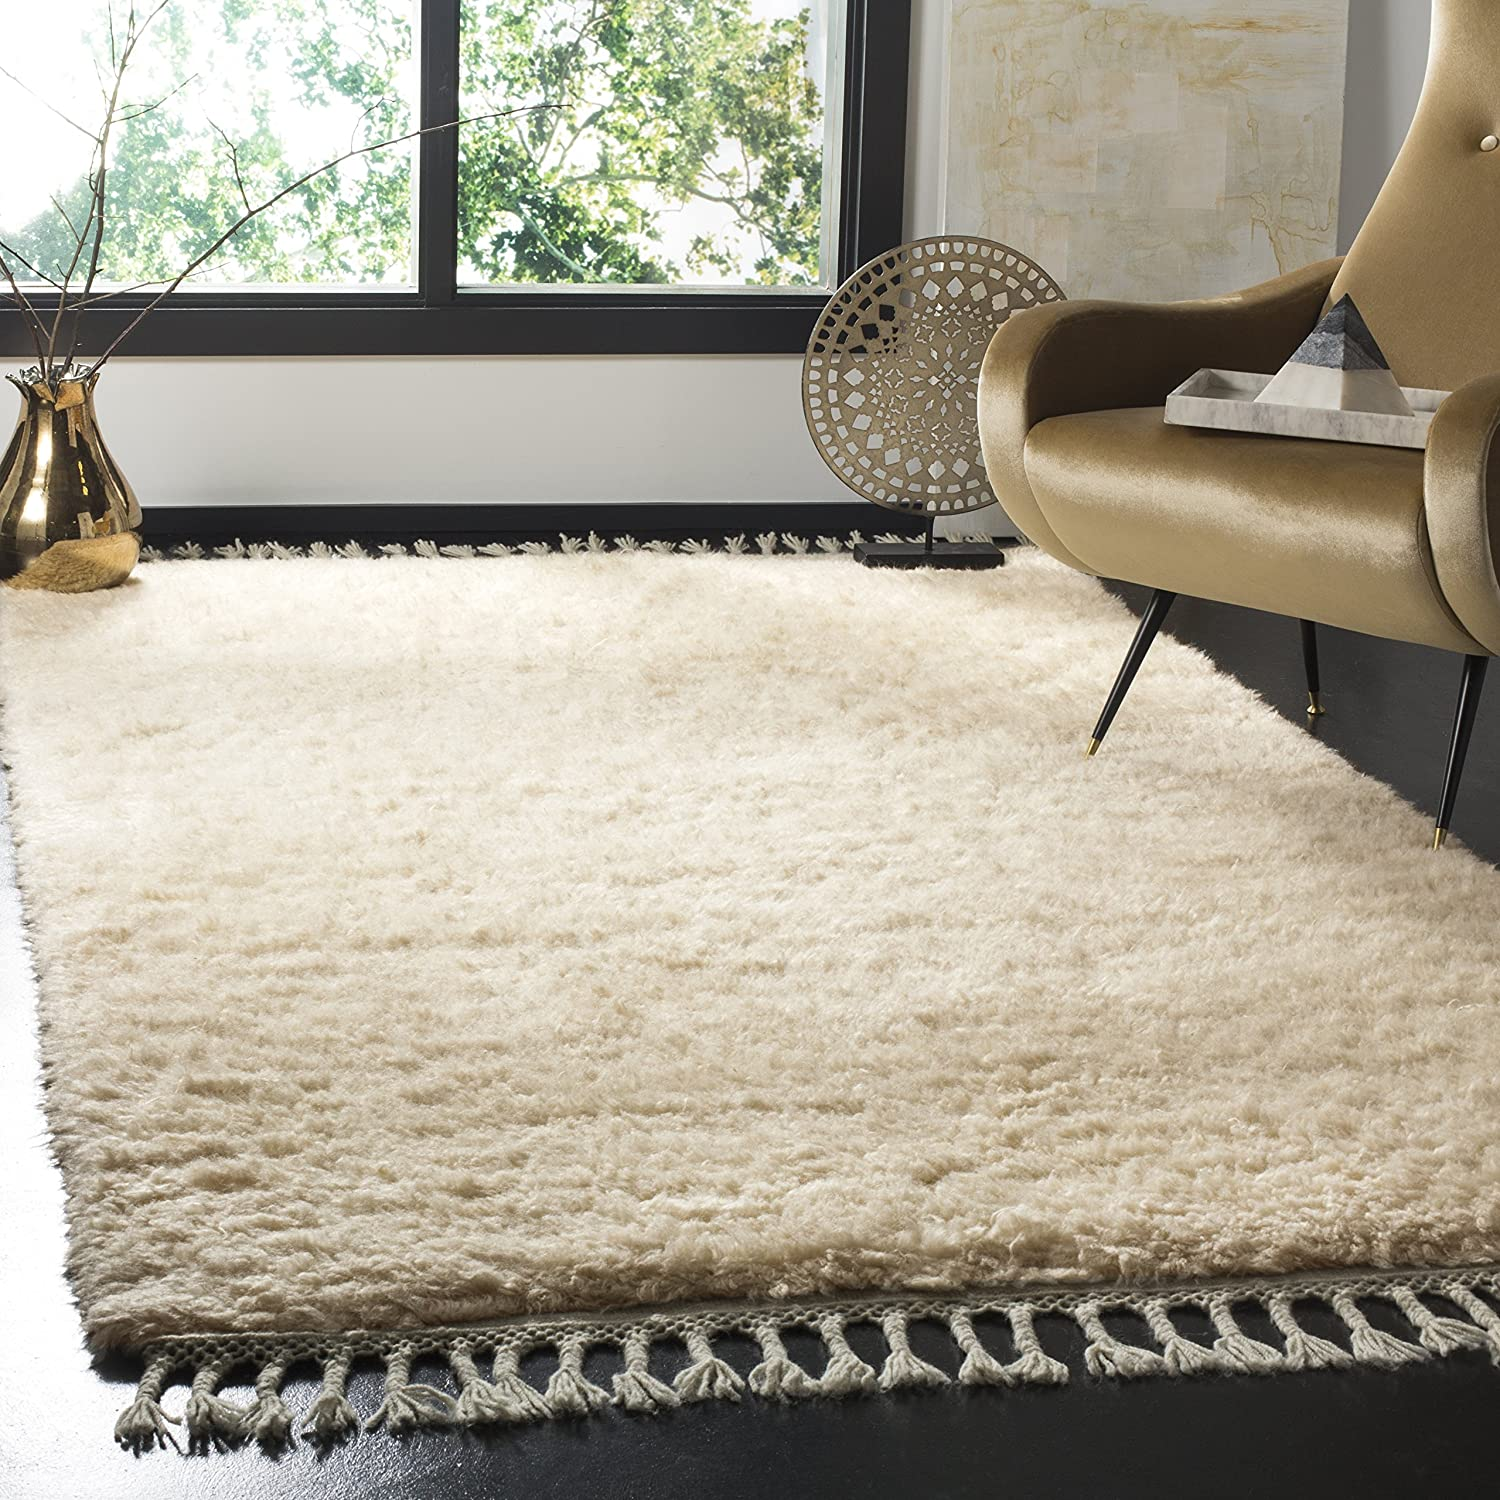 Amazon Com Safavieh Casablanca Shag Collection Csb150c Hand Knotted Tassel Premium New Zealand Wool 1 8 Inch Thick Area Rug 4 X 6 Beige Furniture Decor